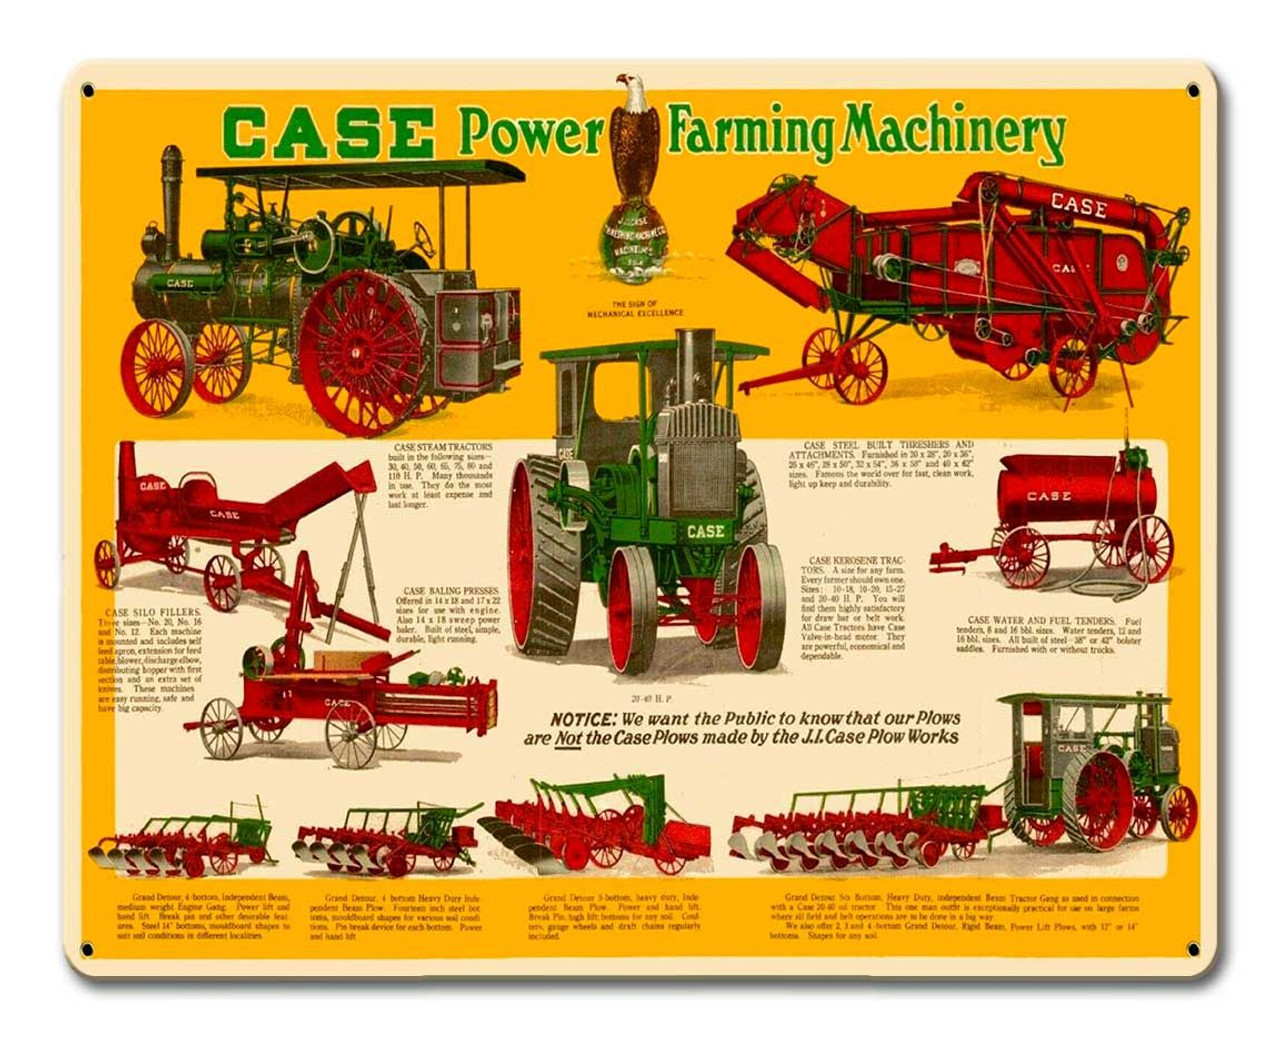 Case Farming Machinery Metal Sign 15 x 12 Inches